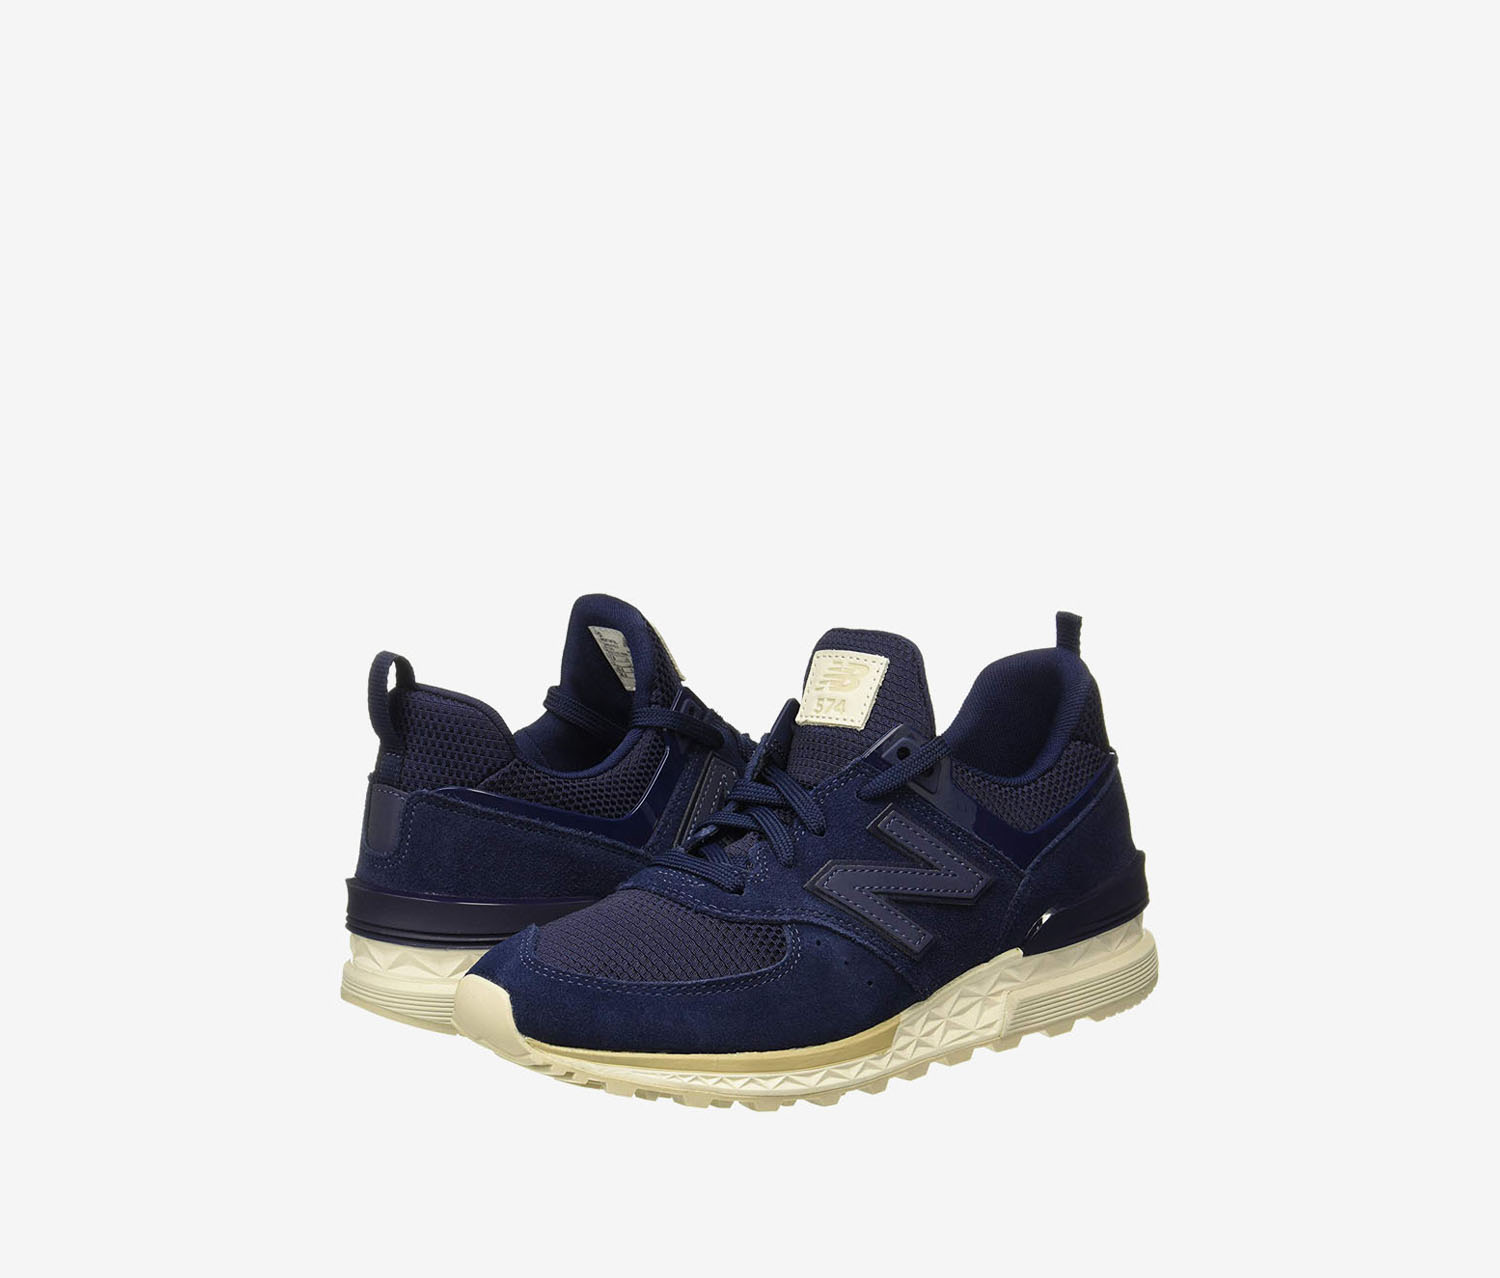 New Balance Men's Casual Shoes, Navy